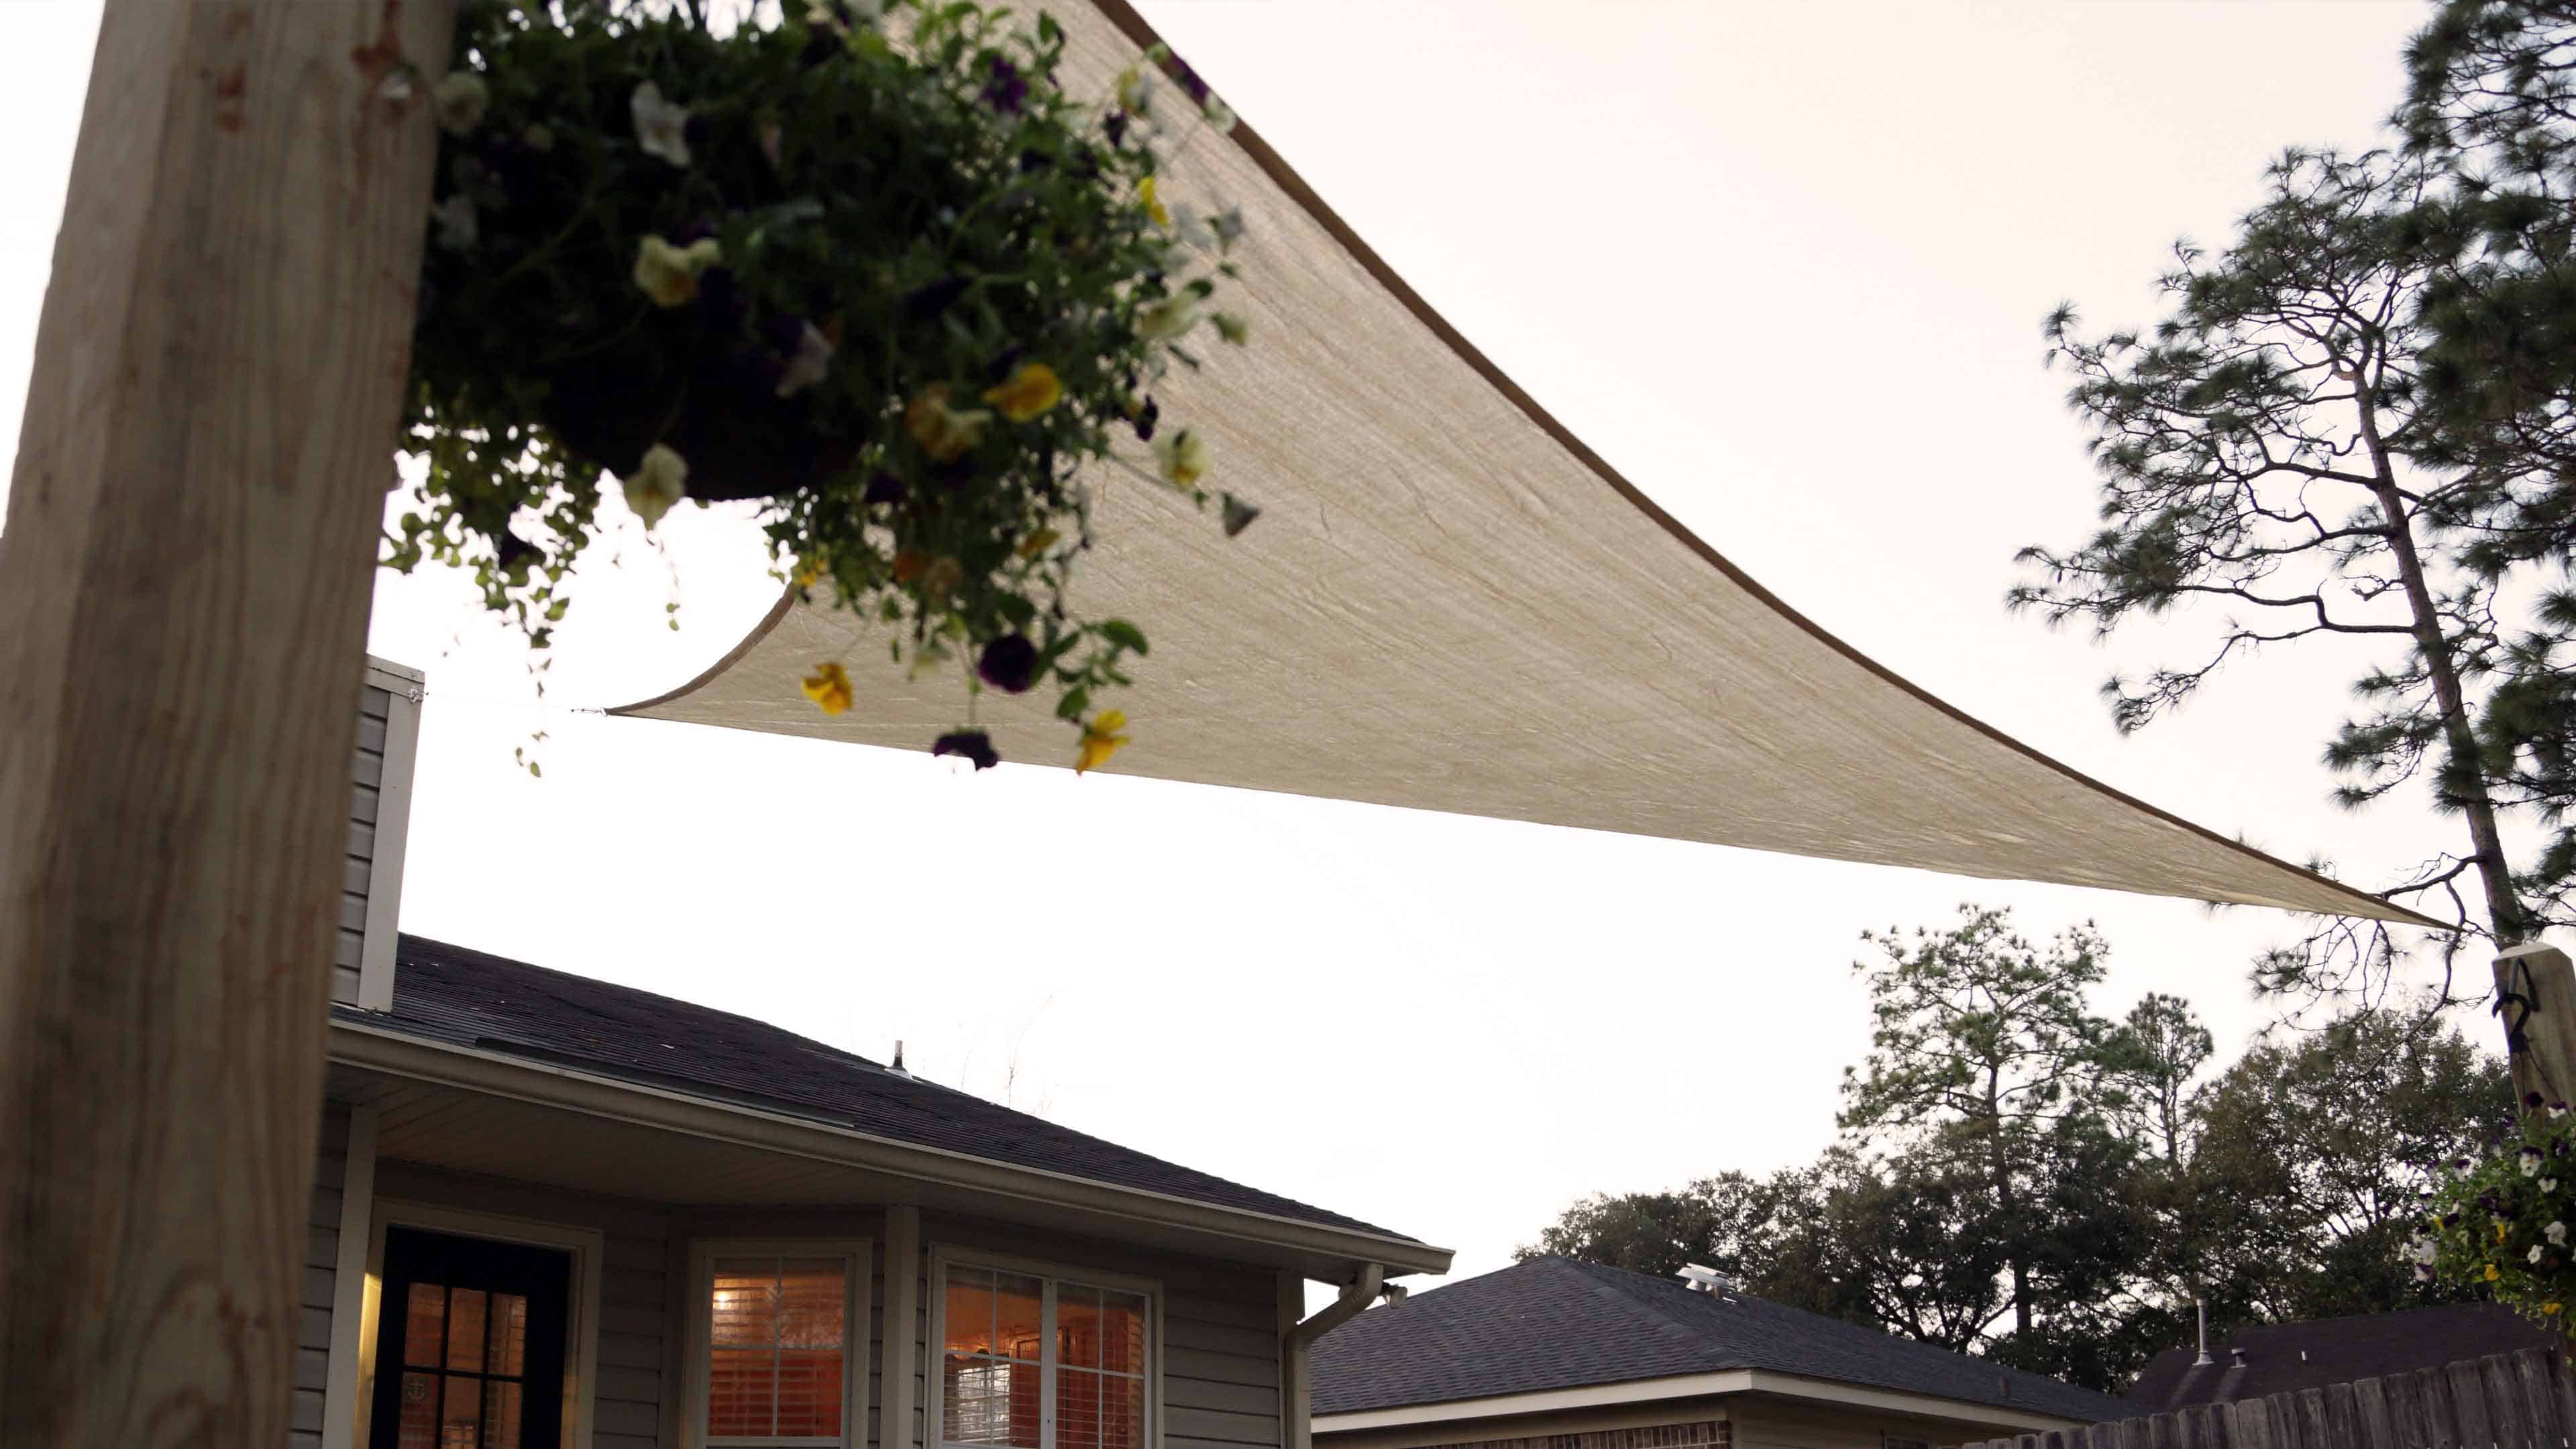 Shade sails provide inexpensive shade and UV protection